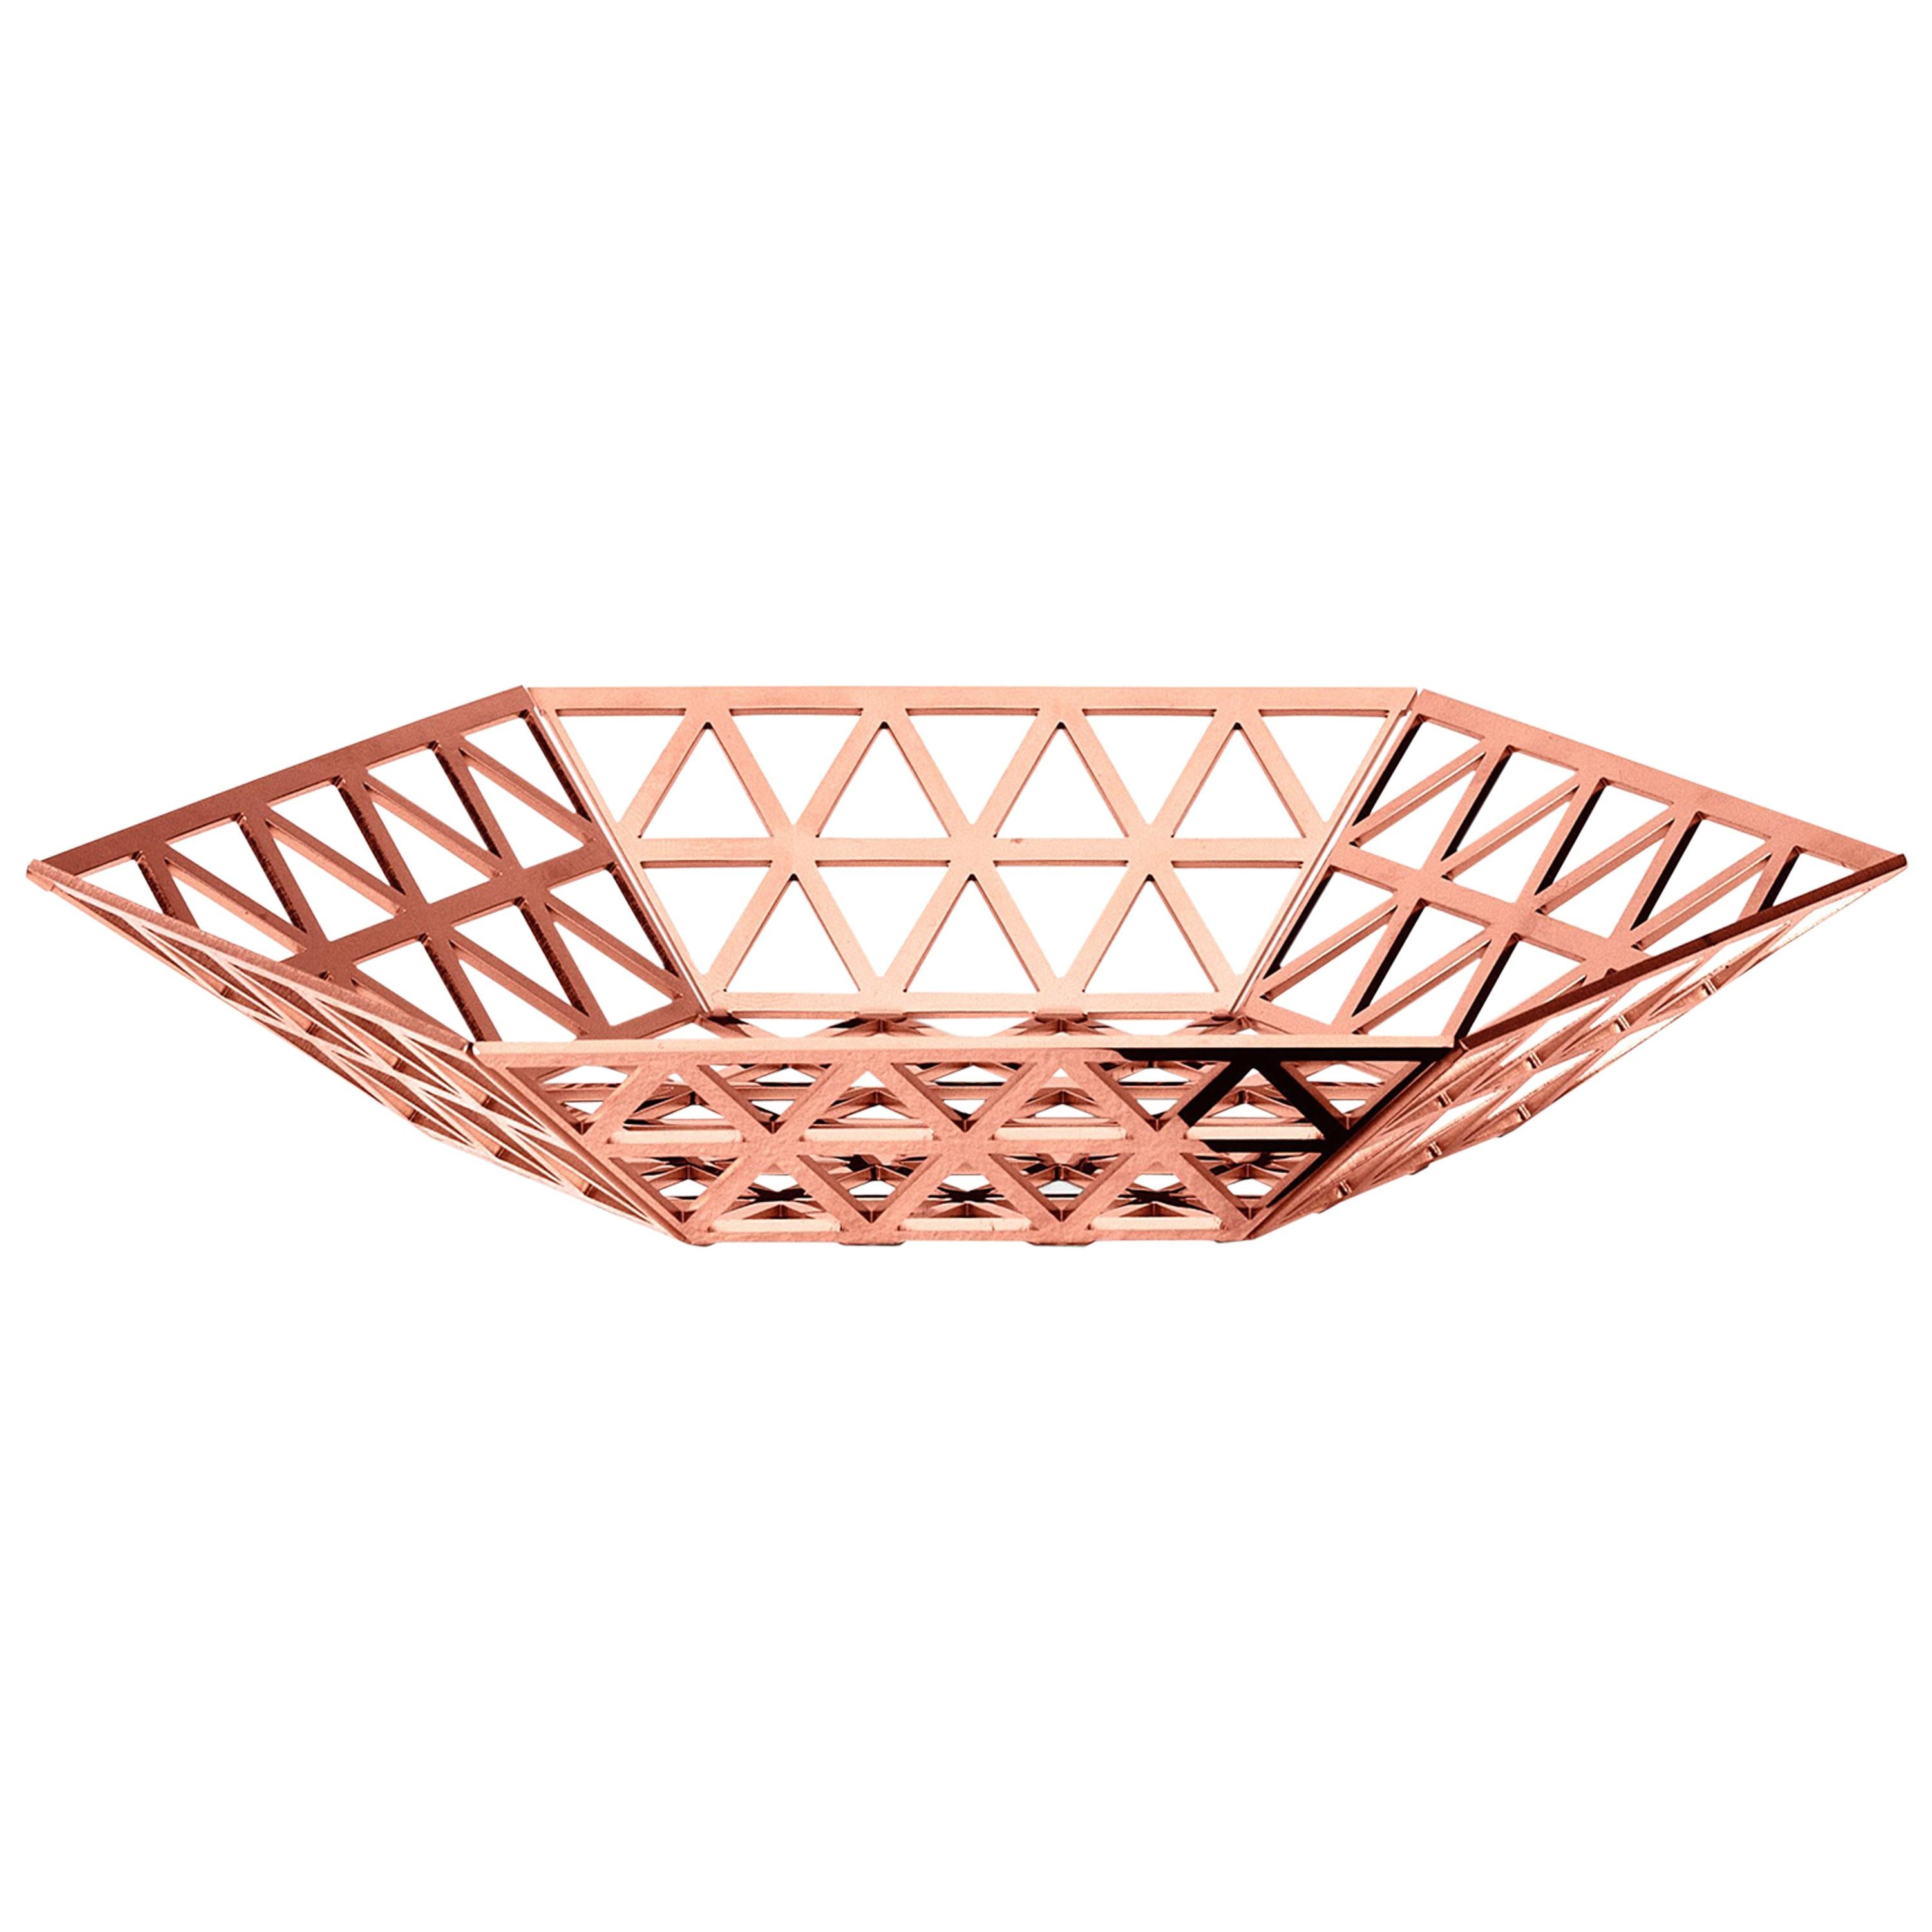 Ghidini 1961 Tip Top Flat Tray in Rose Gold by Richard Hutten